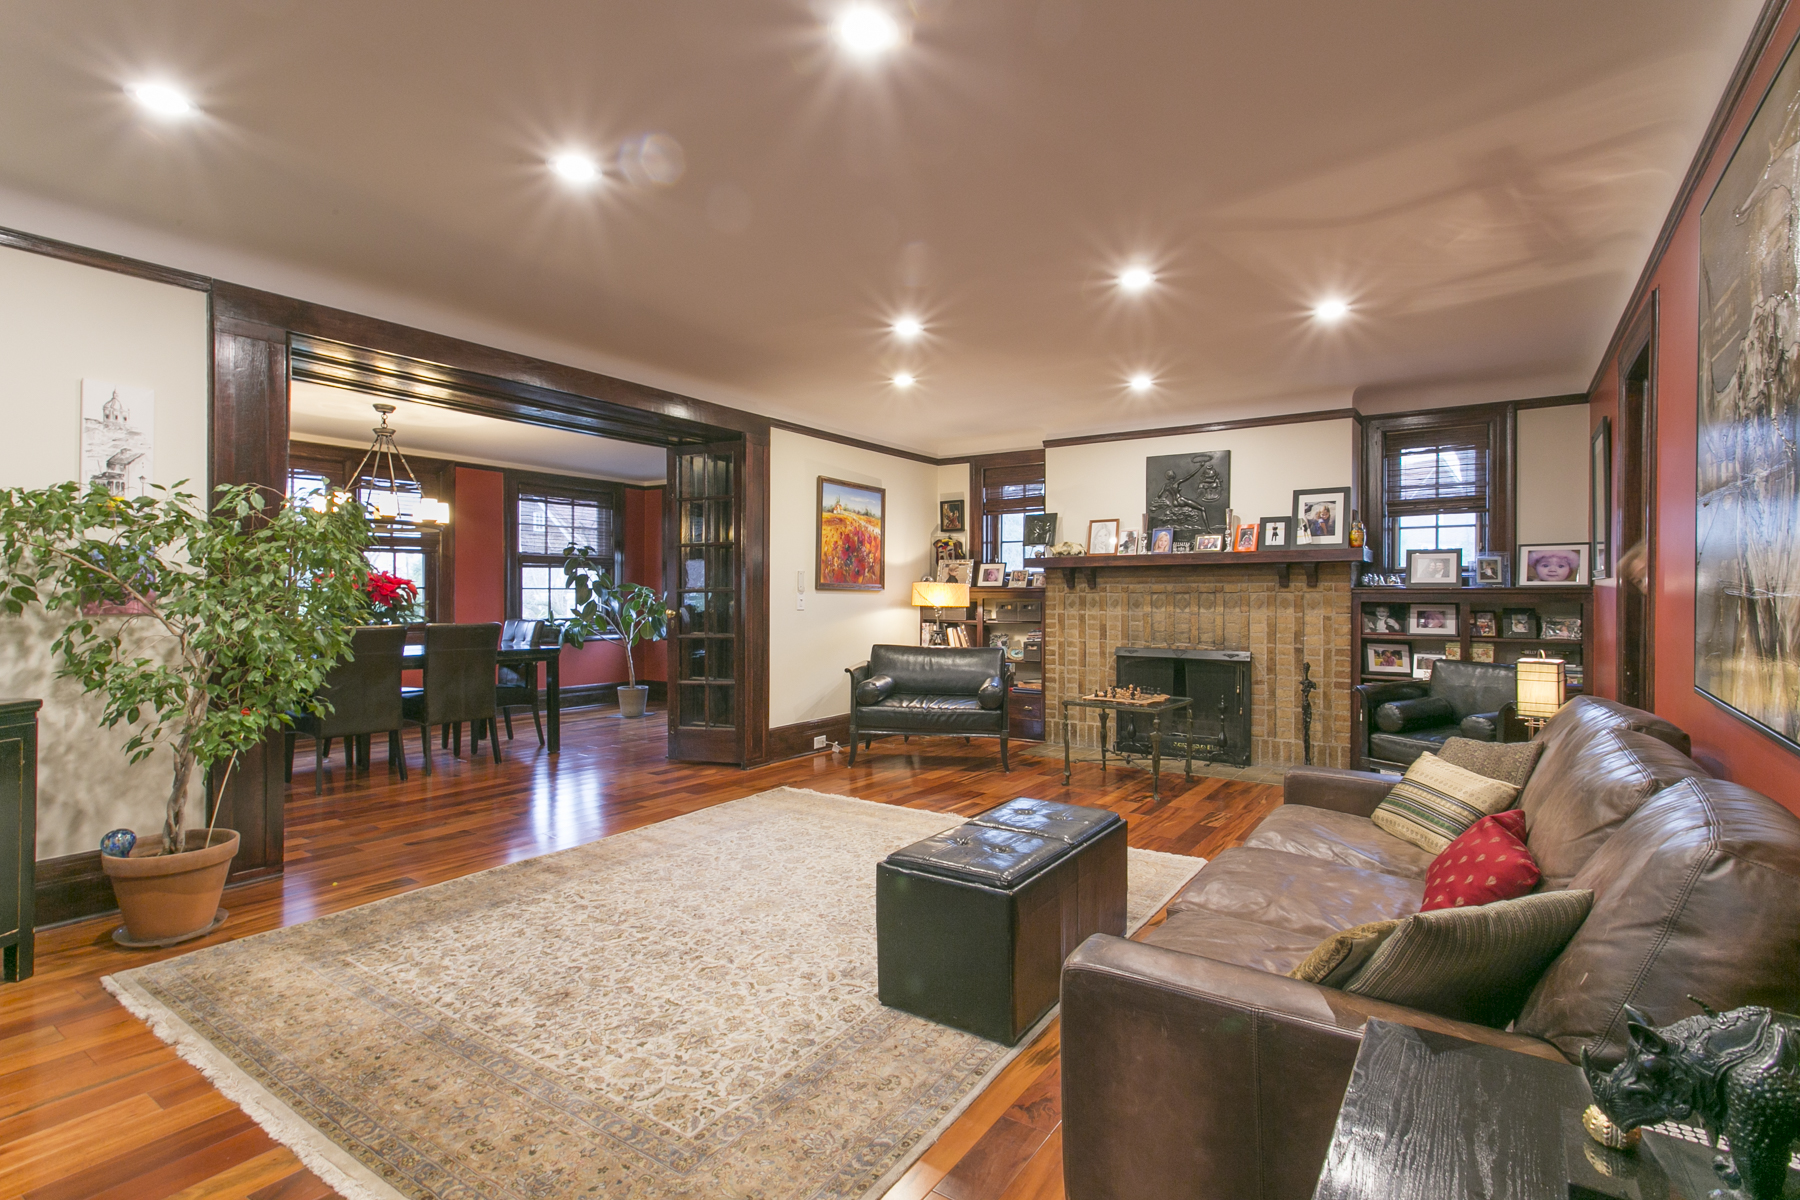 OPEN HOUSE SUNDAY APRIL 16TH 11 1 PM 78 DARTMOUTH STREET, FOREST HILLS  GARDENS, QUEENS, NYC. Queens New York Real Estate. U201c Pictures